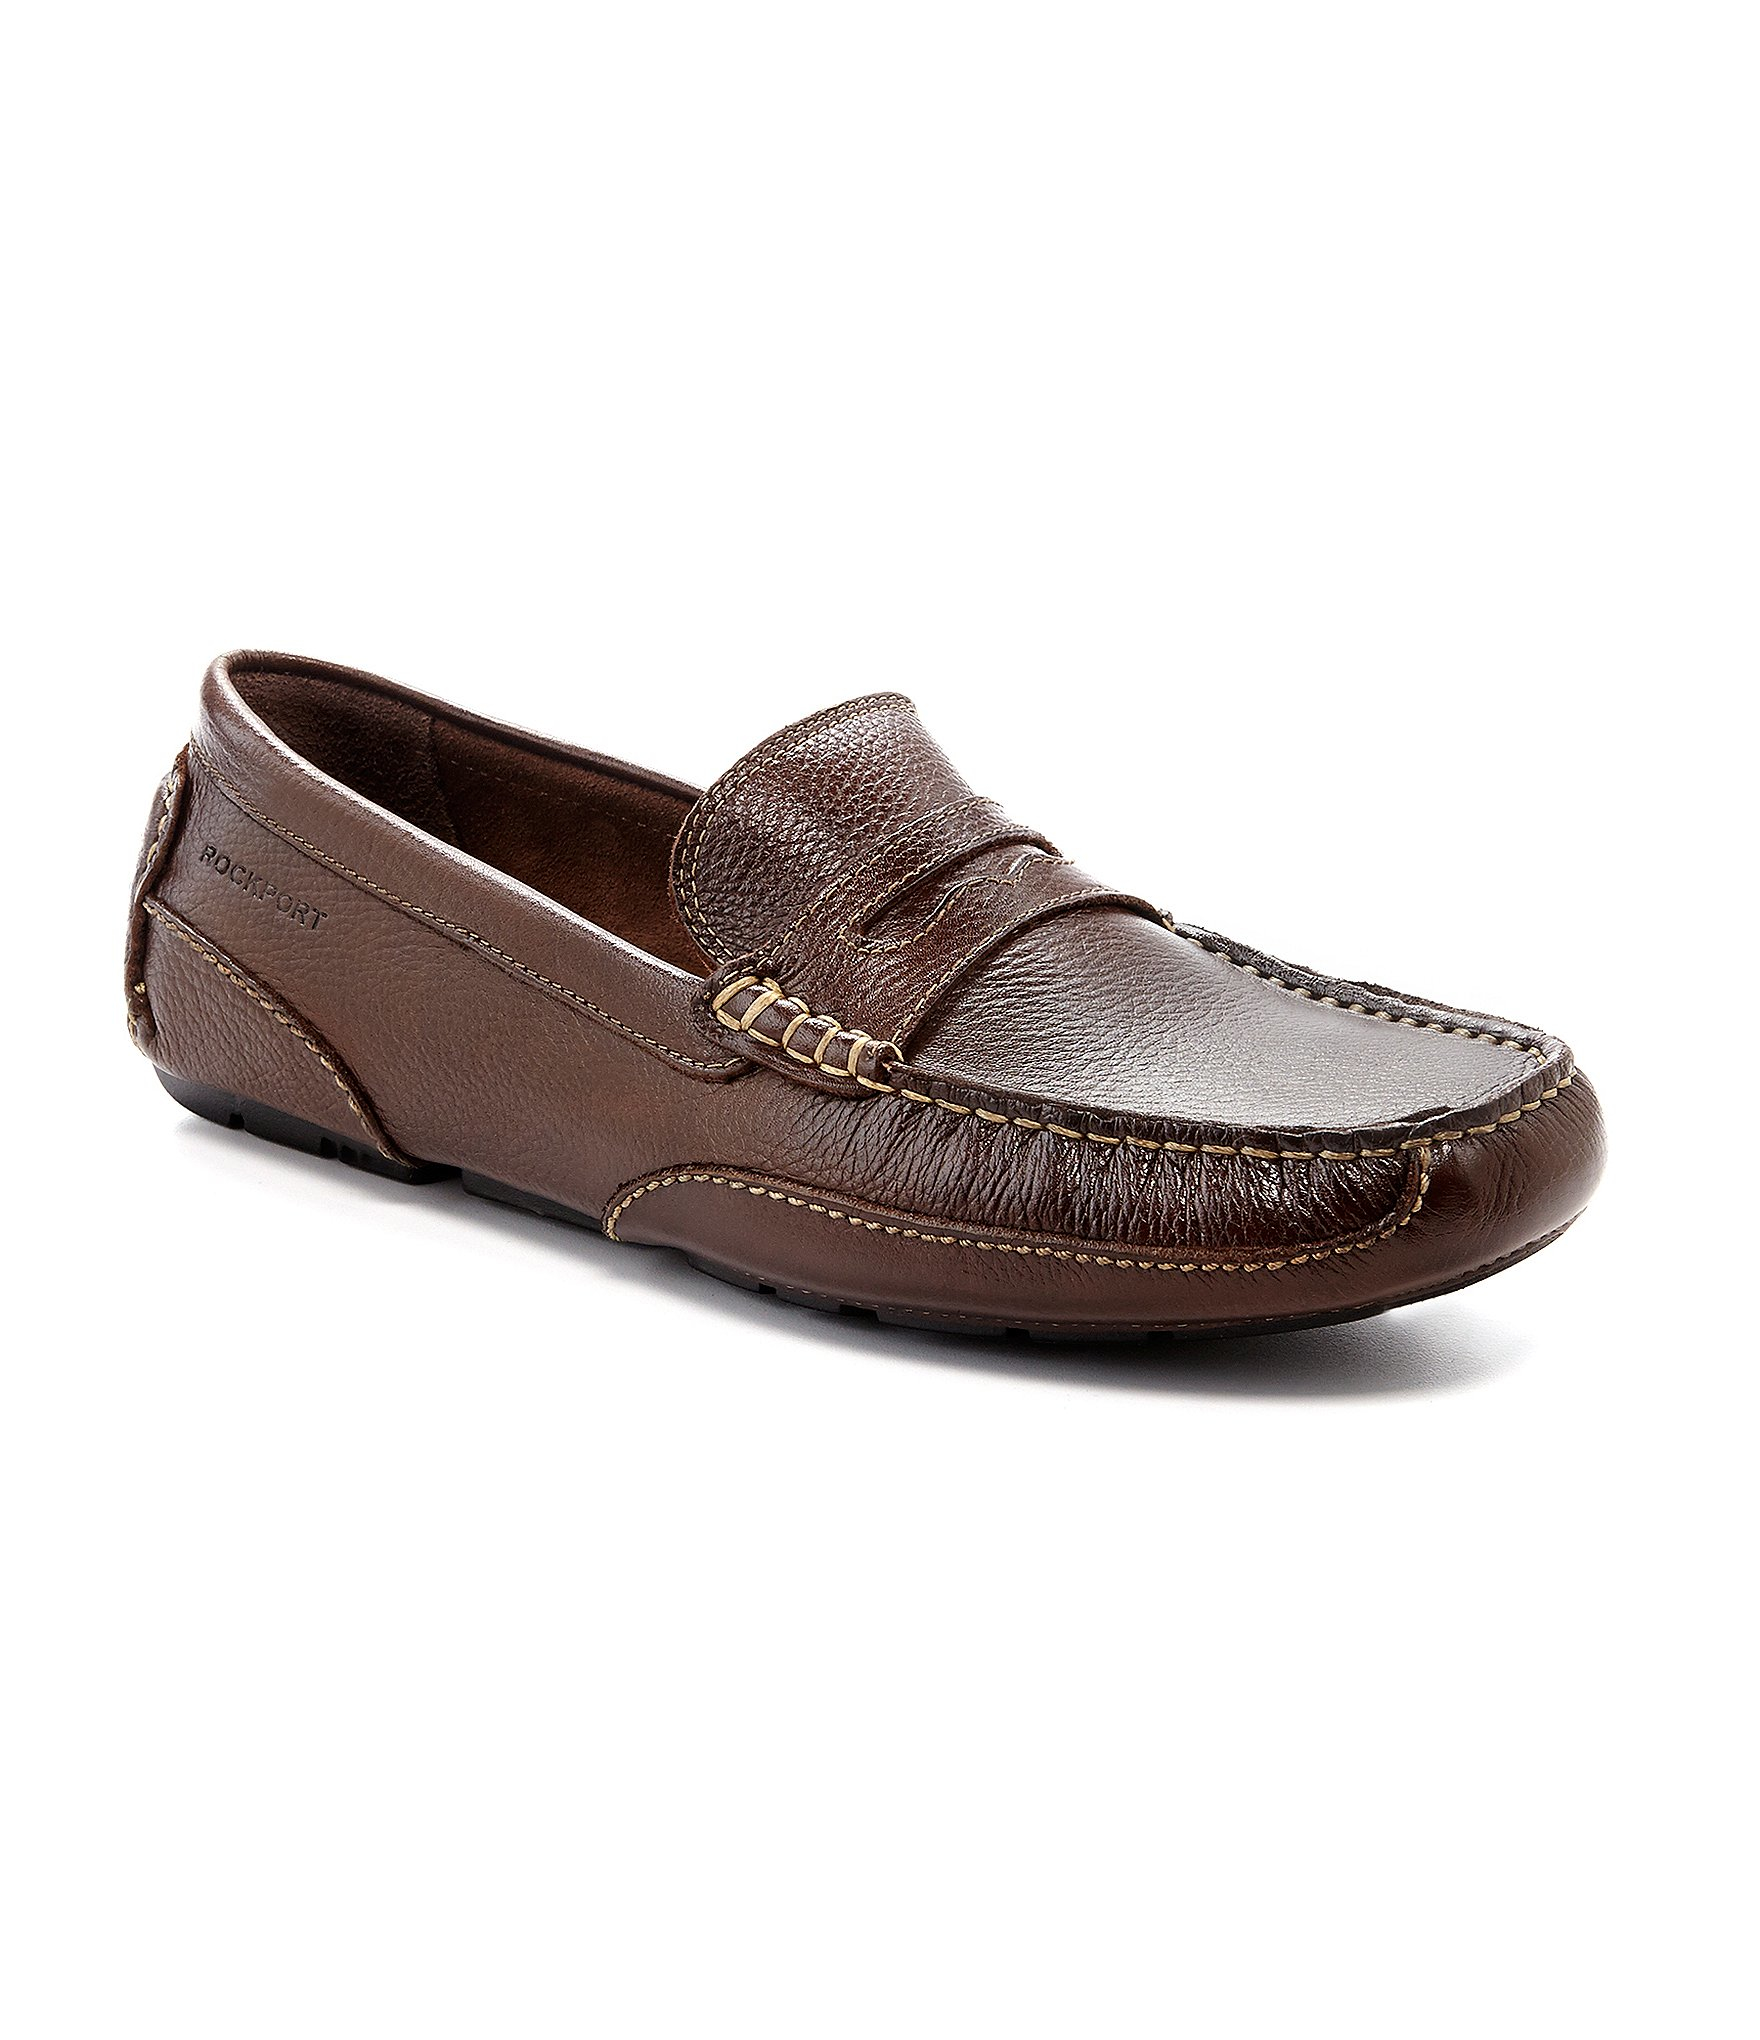 Leather Rockport Loafers - results from brands Rockport, products like Rockport Men's Classic Loafer Lite Venetian, Rockport Total Motion Loafer Penny (Tan Leather) Men's Slip on Shoes, Rockport Men's 3-Eye Steel Toe Boat Shoe - Brown, Size 11 1/2 Wide, Model RK, Men's Shoes.